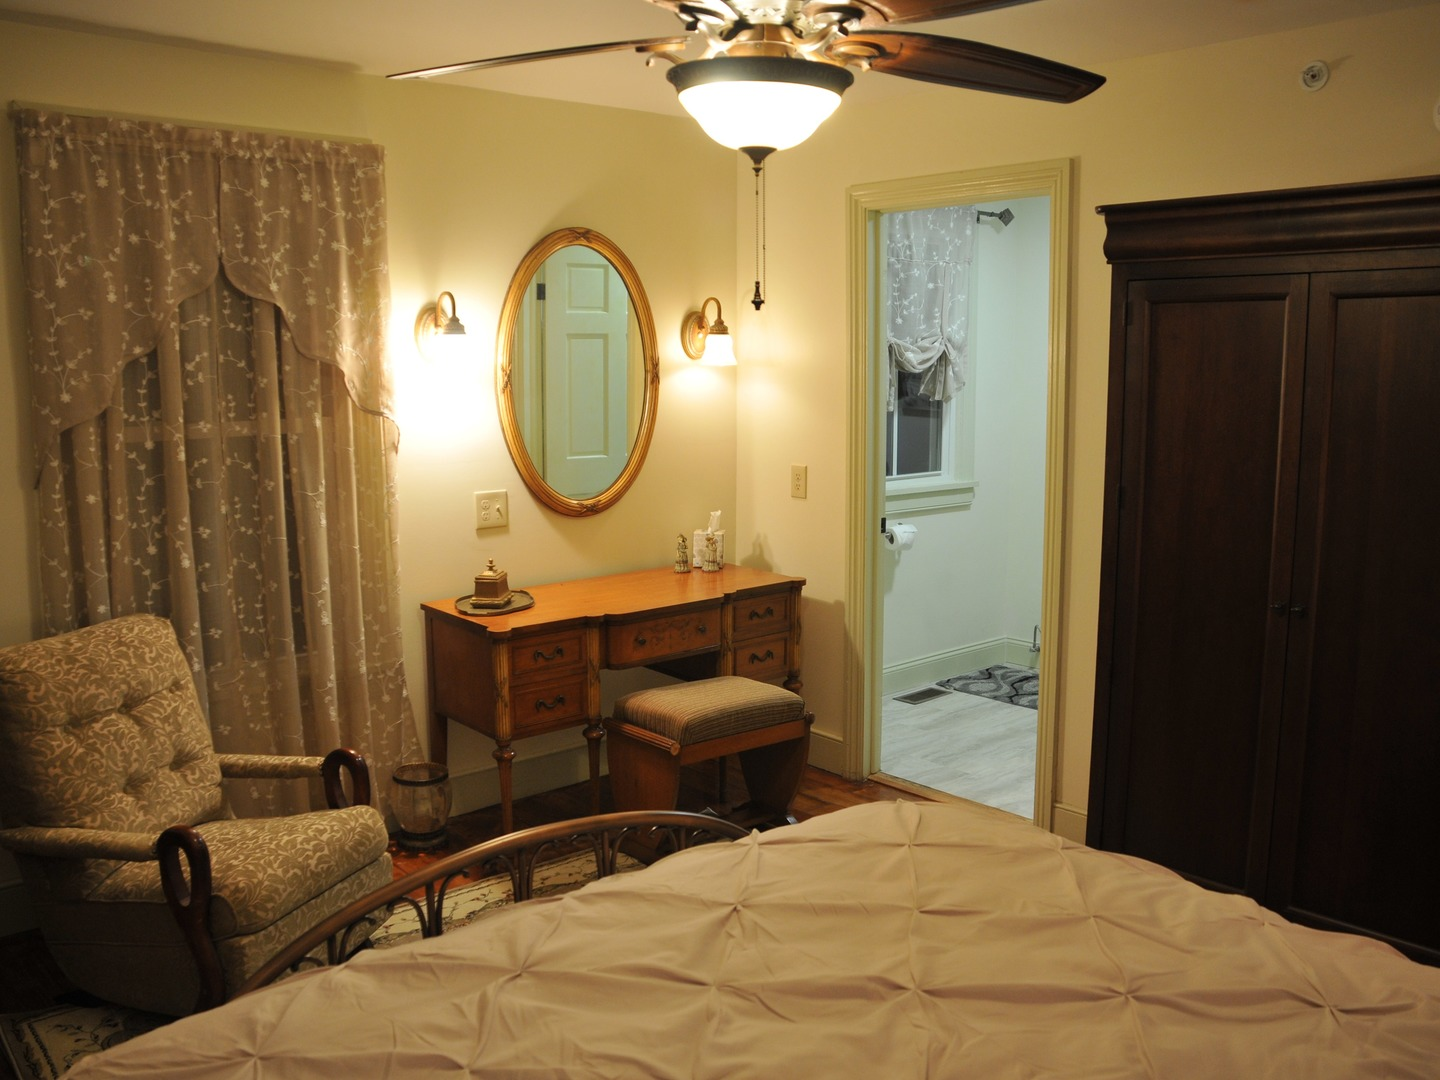 A bedroom with a large bed in a room at Fulling Mill Inn and Restaurant.